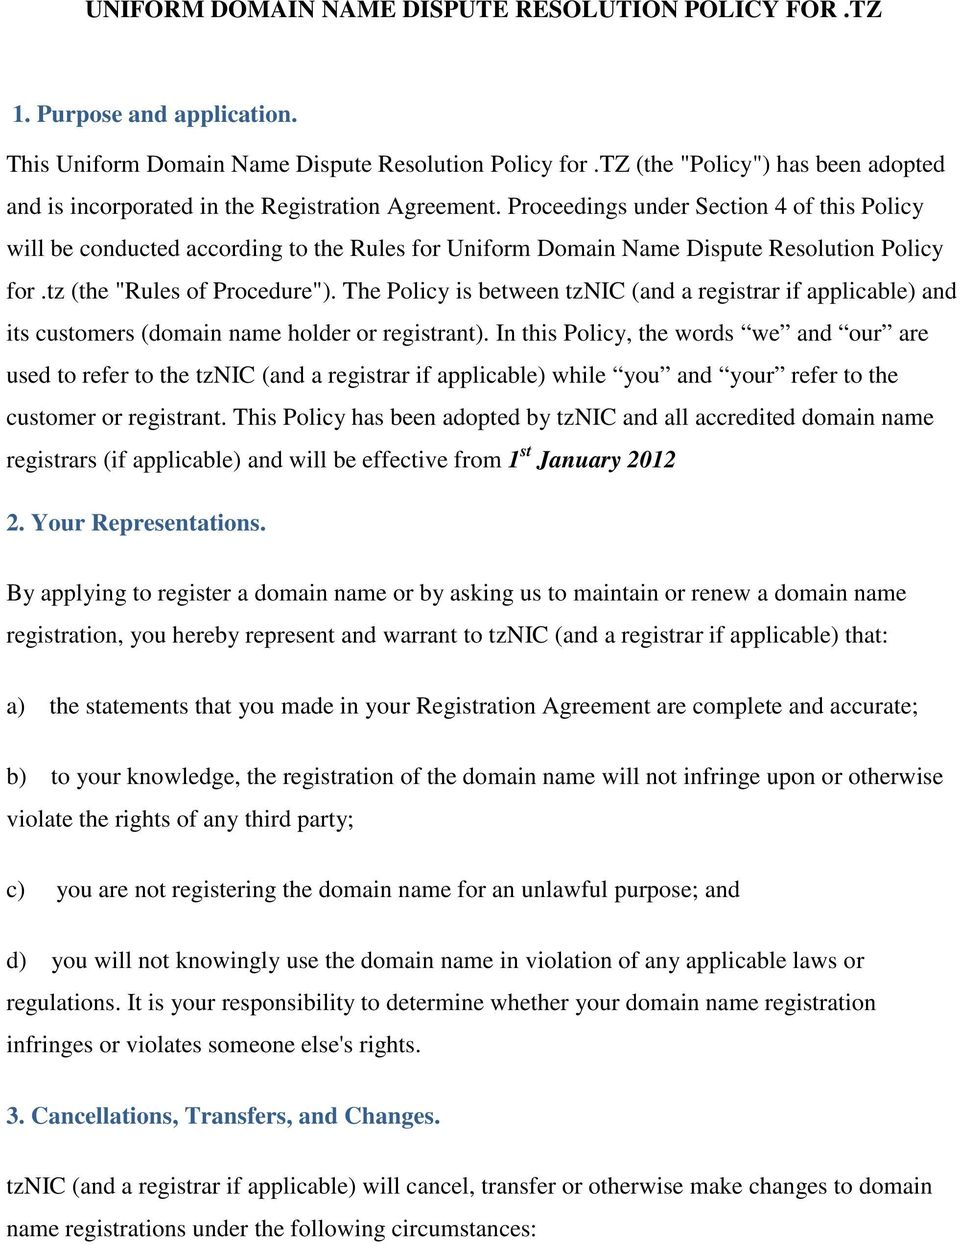 "Proceedings under Section 4 of this Policy will be conducted according to the Rules for Uniform Domain Name Dispute Resolution Policy for.tz (the ""Rules of Procedure"")."